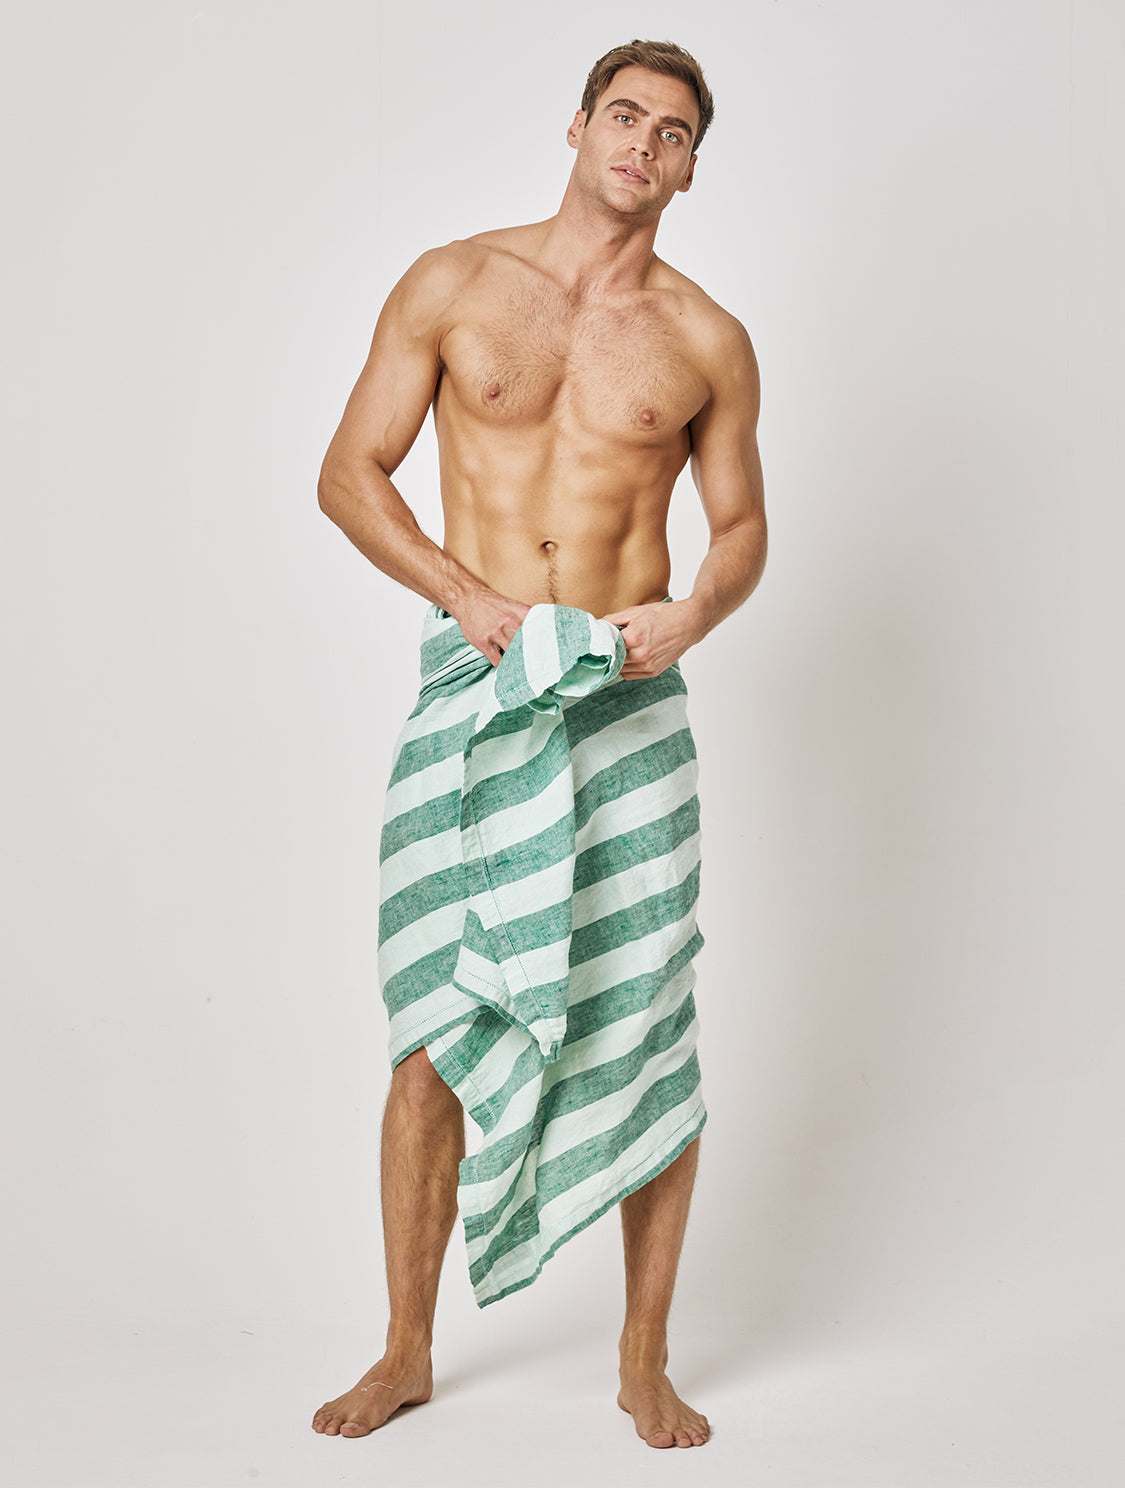 Large Striped Linen Towel